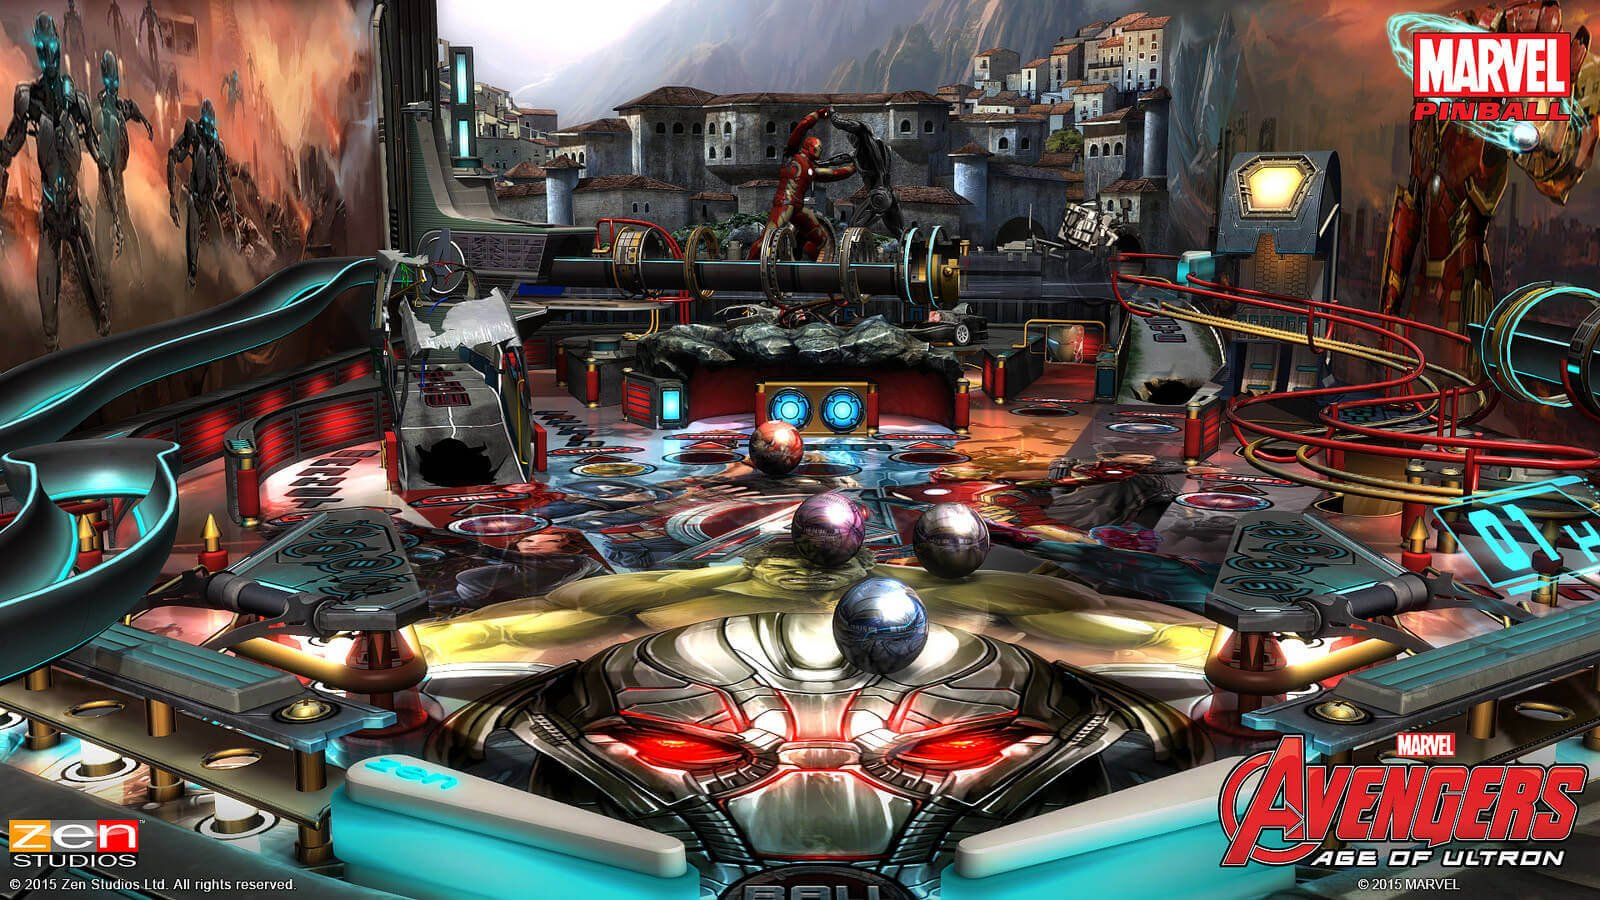 Avengers: Age of Ultron Gets Pinballed